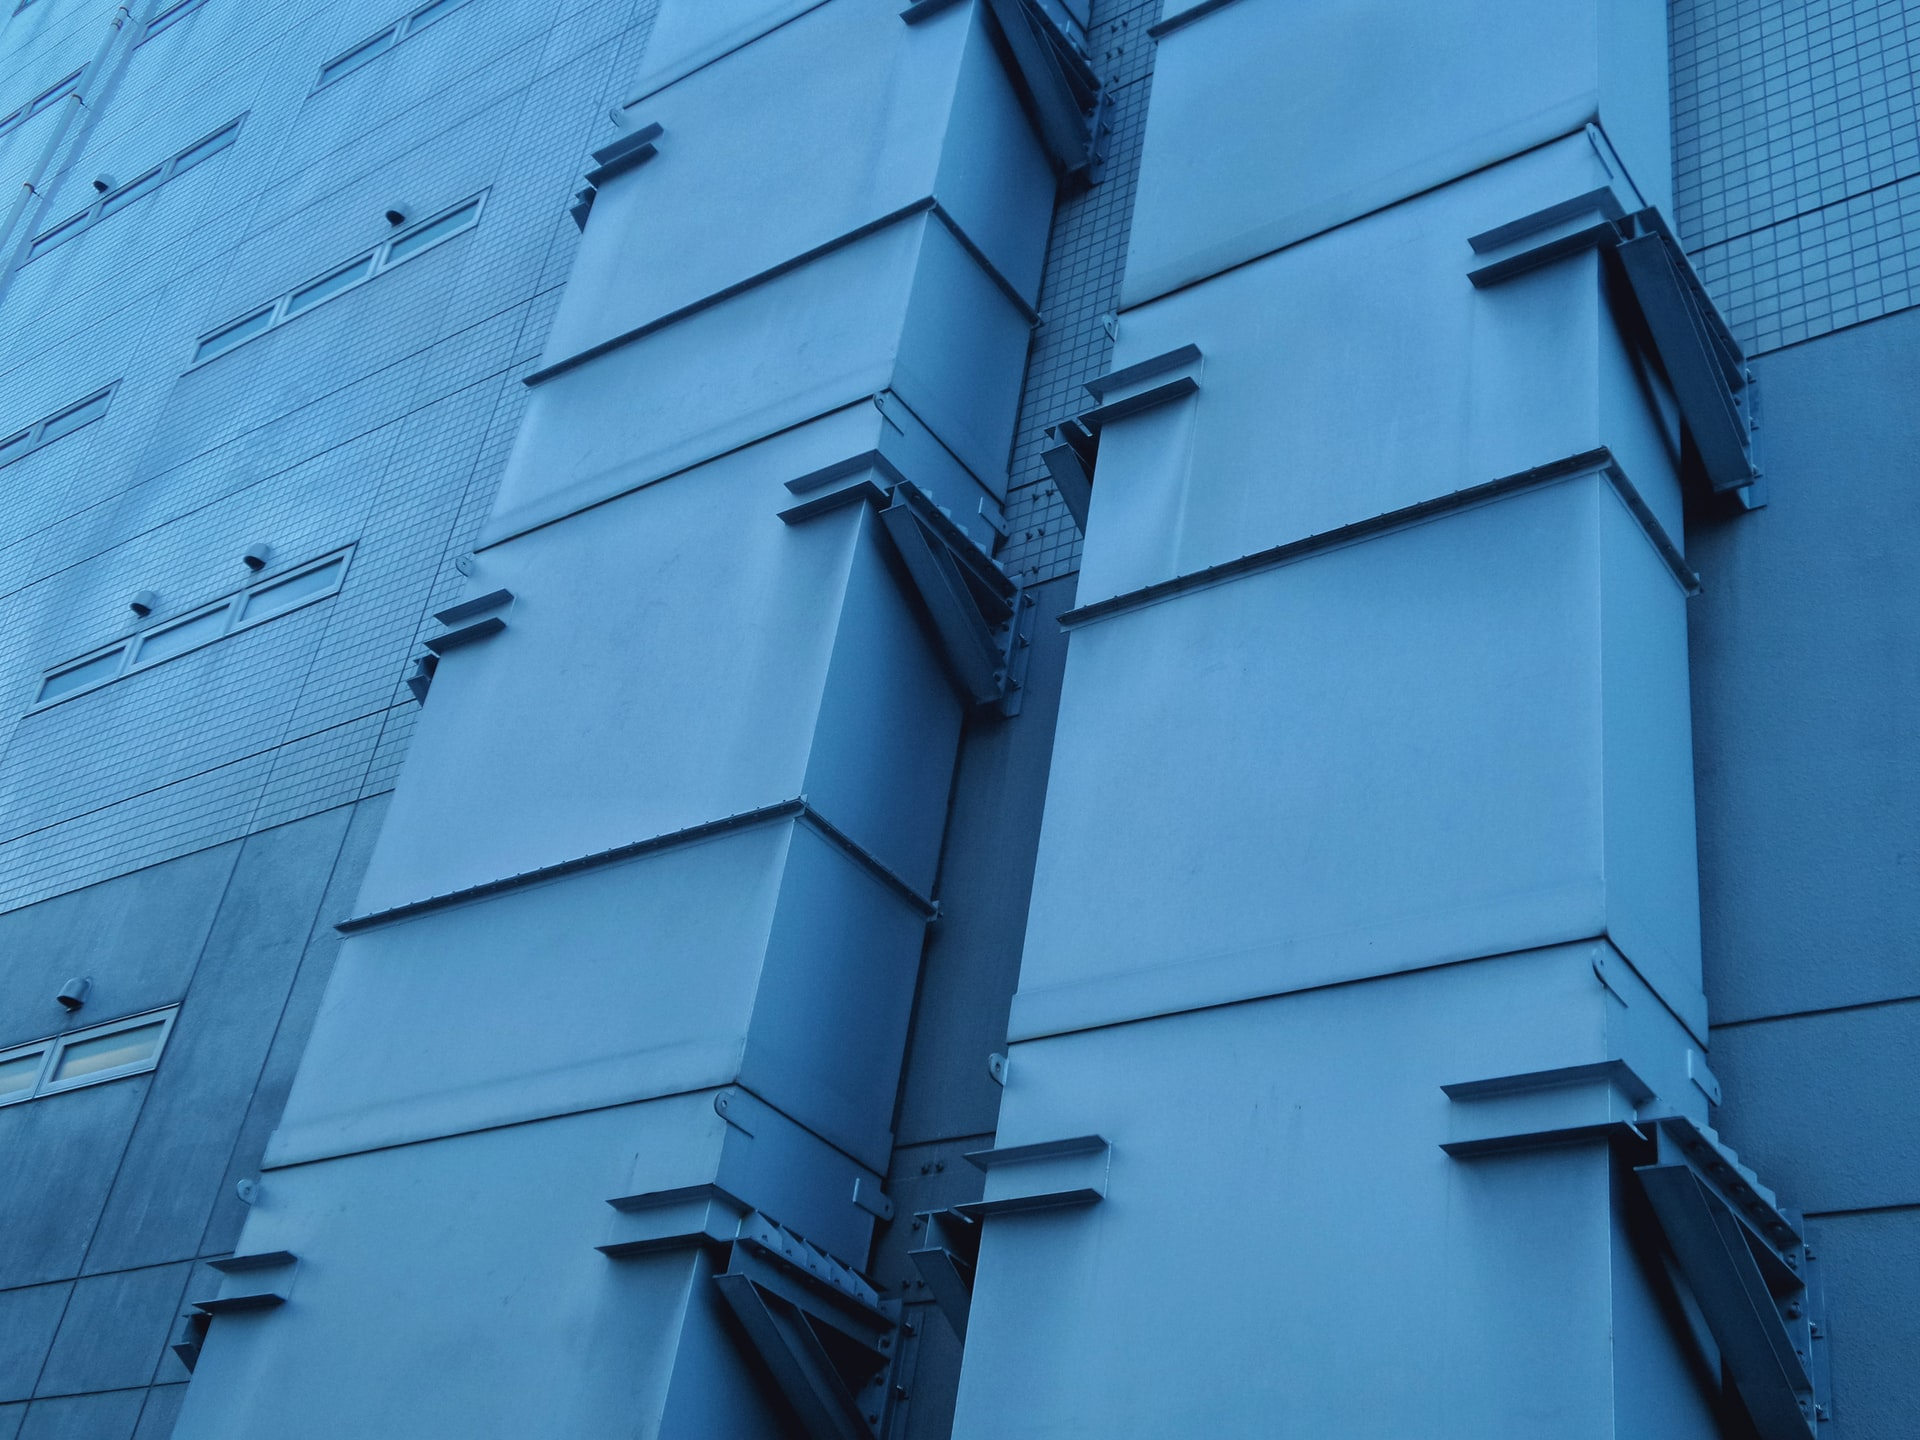 Blue ductwork